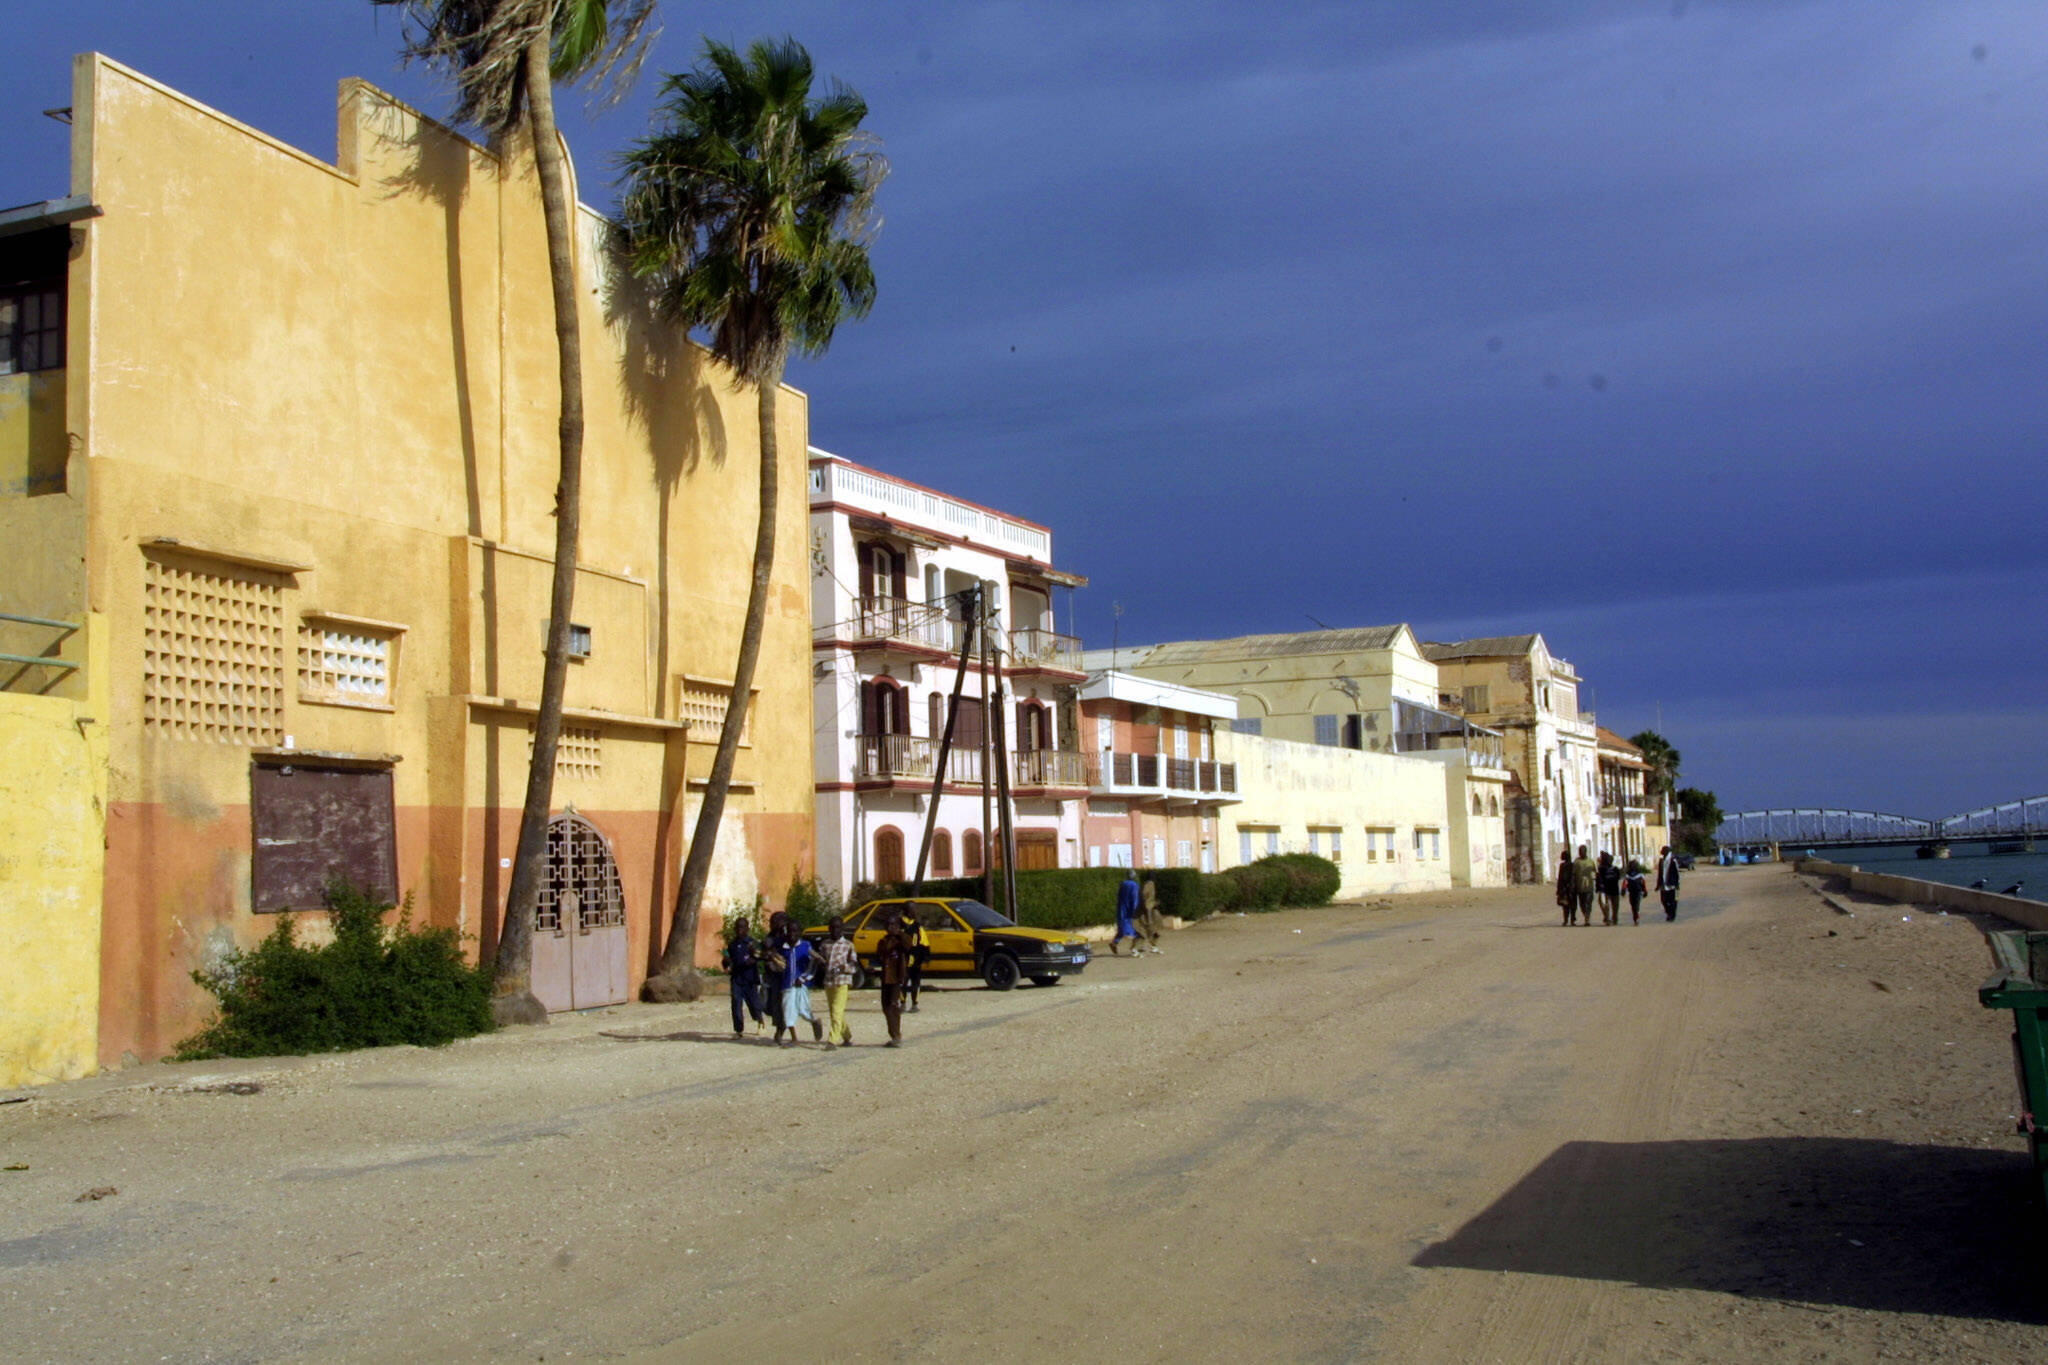 Saint-Louis was the capital of the French colony of Senegal and its colonial-era architecture helped make the island a UNESCO World Heritage Site